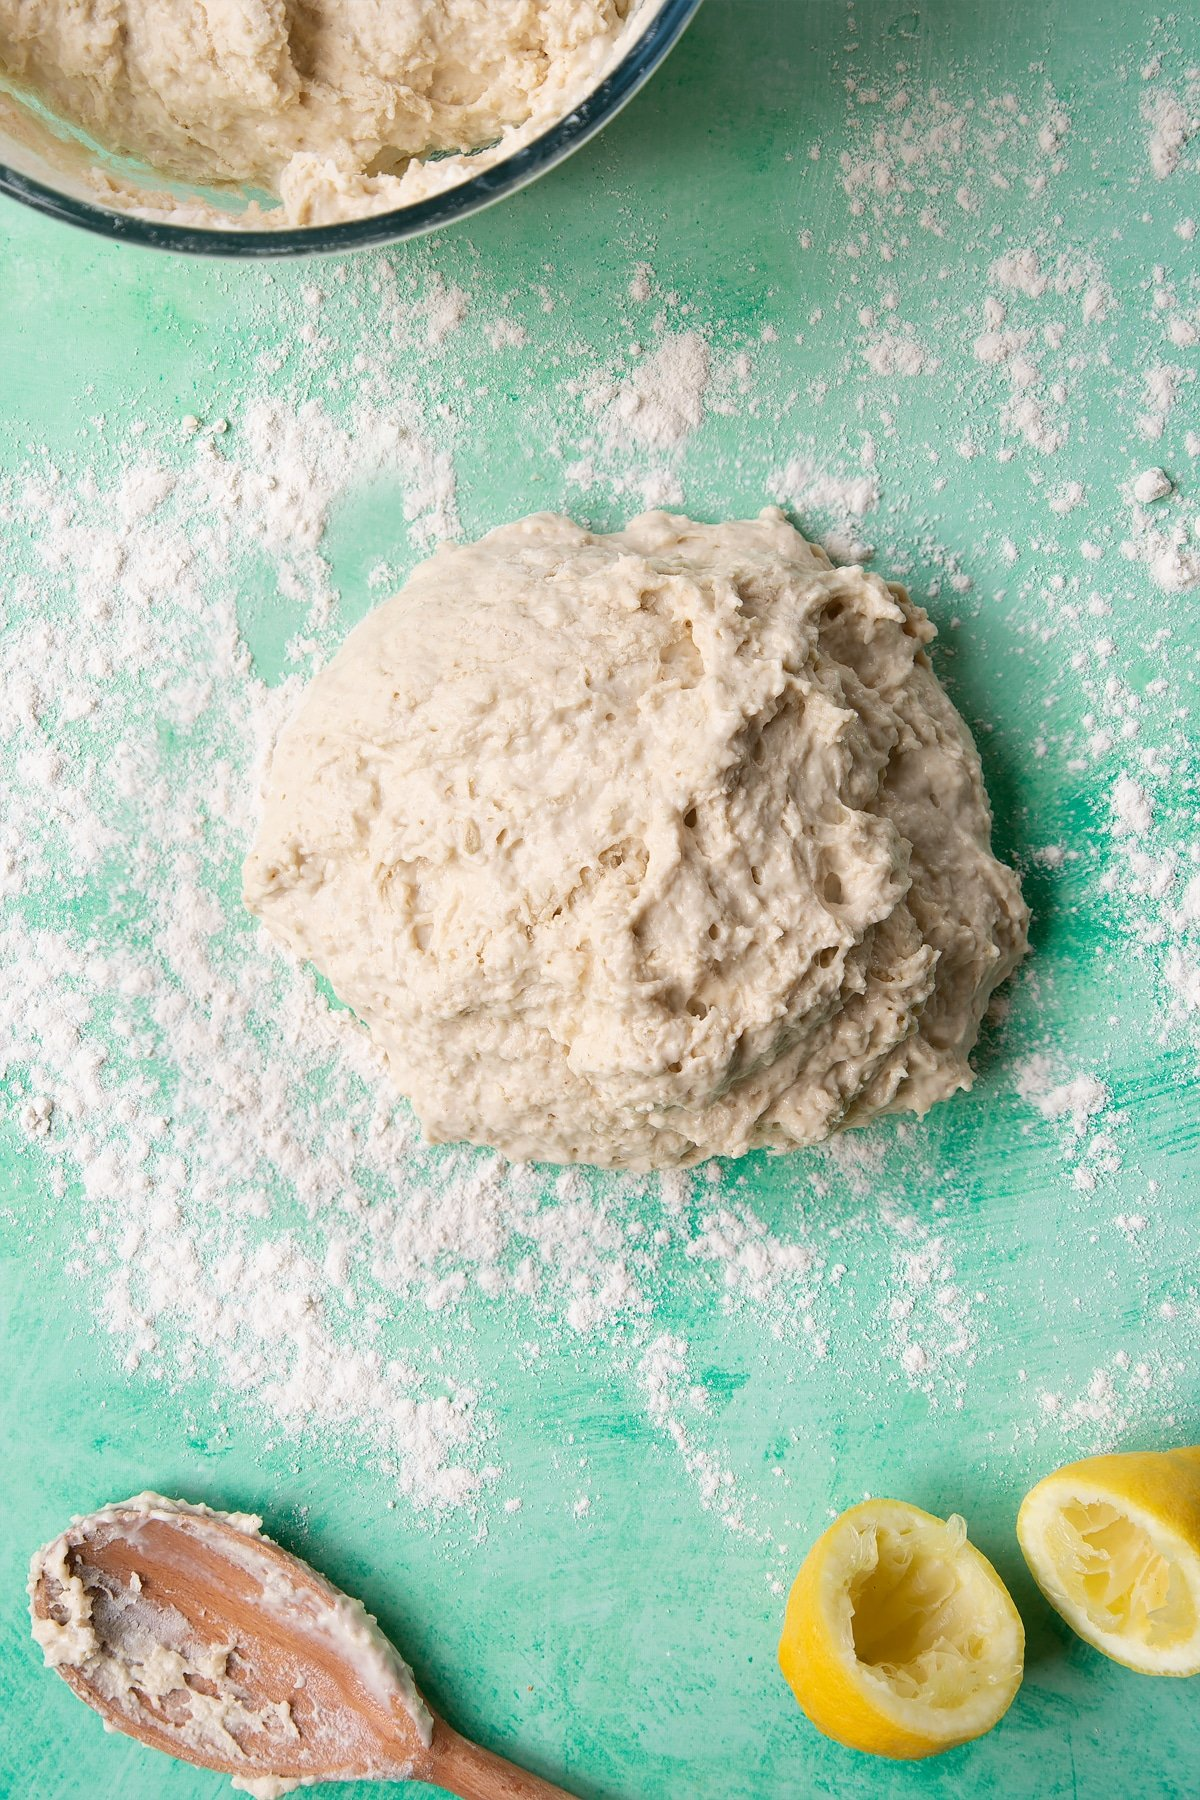 Dough to make a soda bread recipe without buttermilk tipped onto a floured surface.